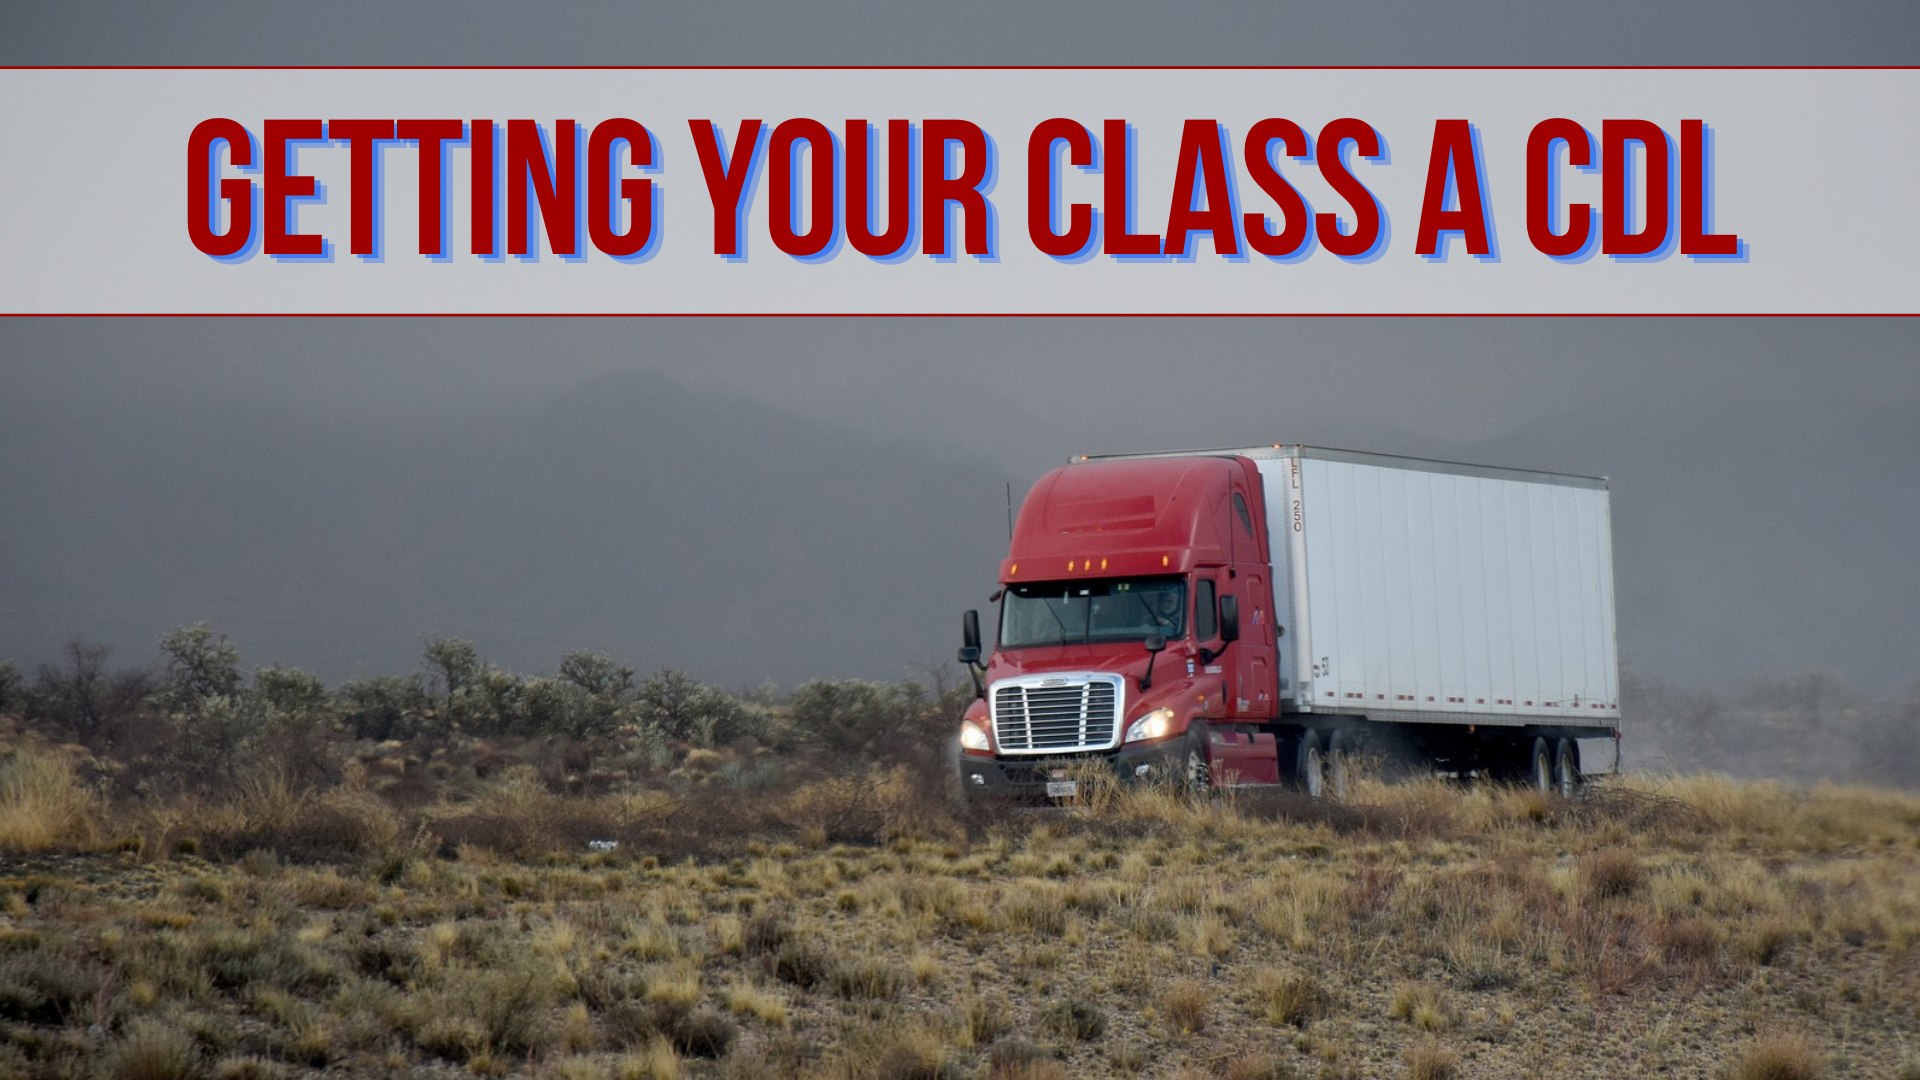 How To Get A Class A CDL